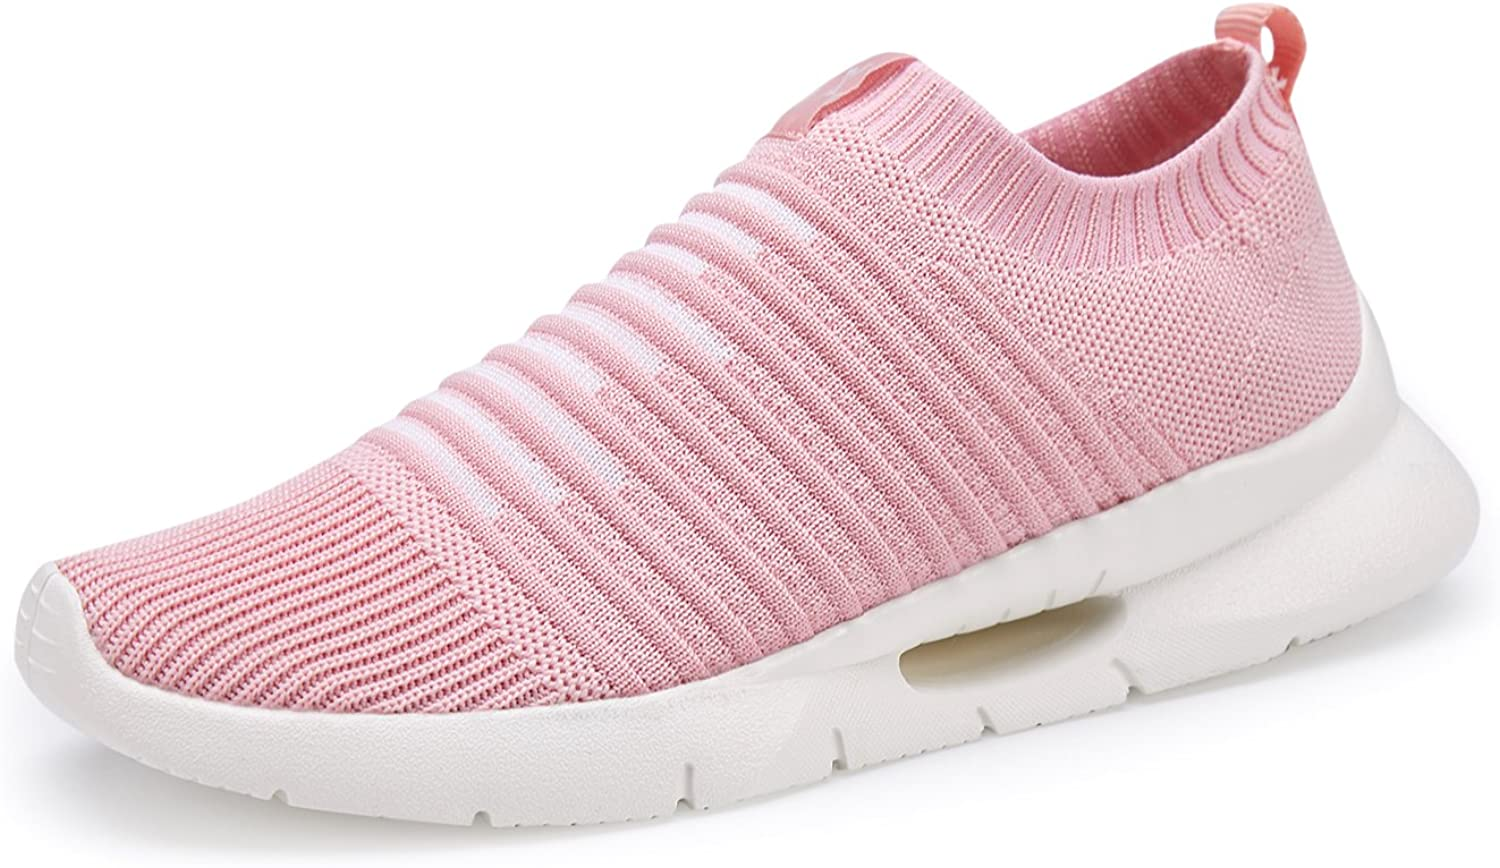 Women's Sneakers Breathable Walking shoes Slip-on Casual Sneakers Mesh Athletic shoes